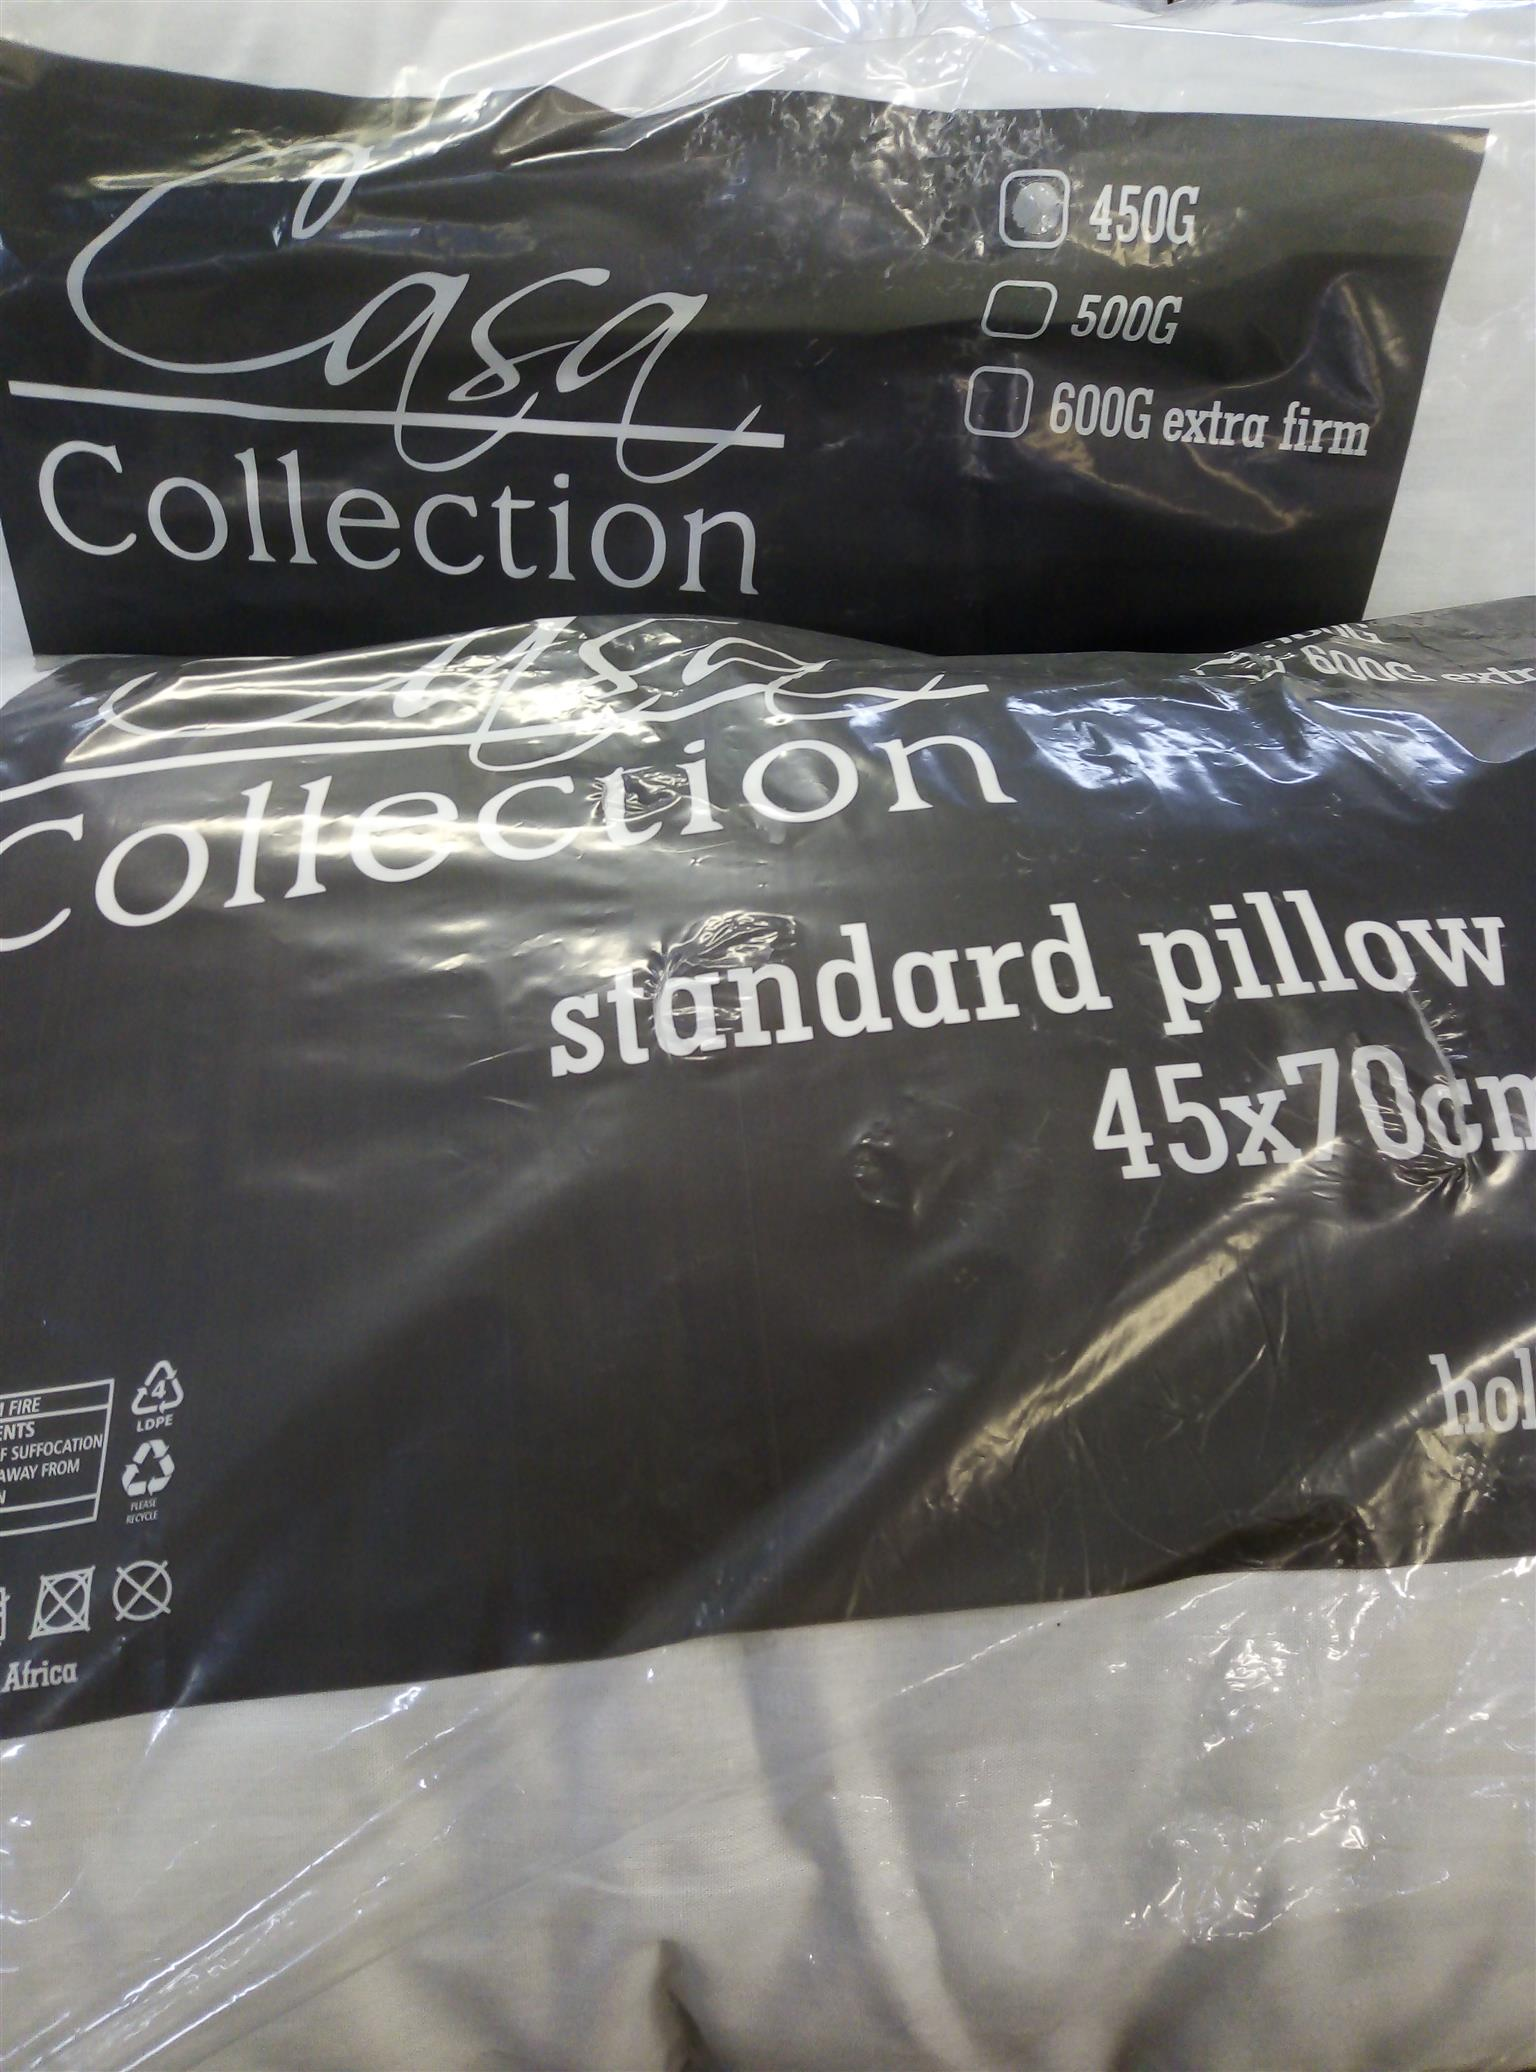 Pillows on sale